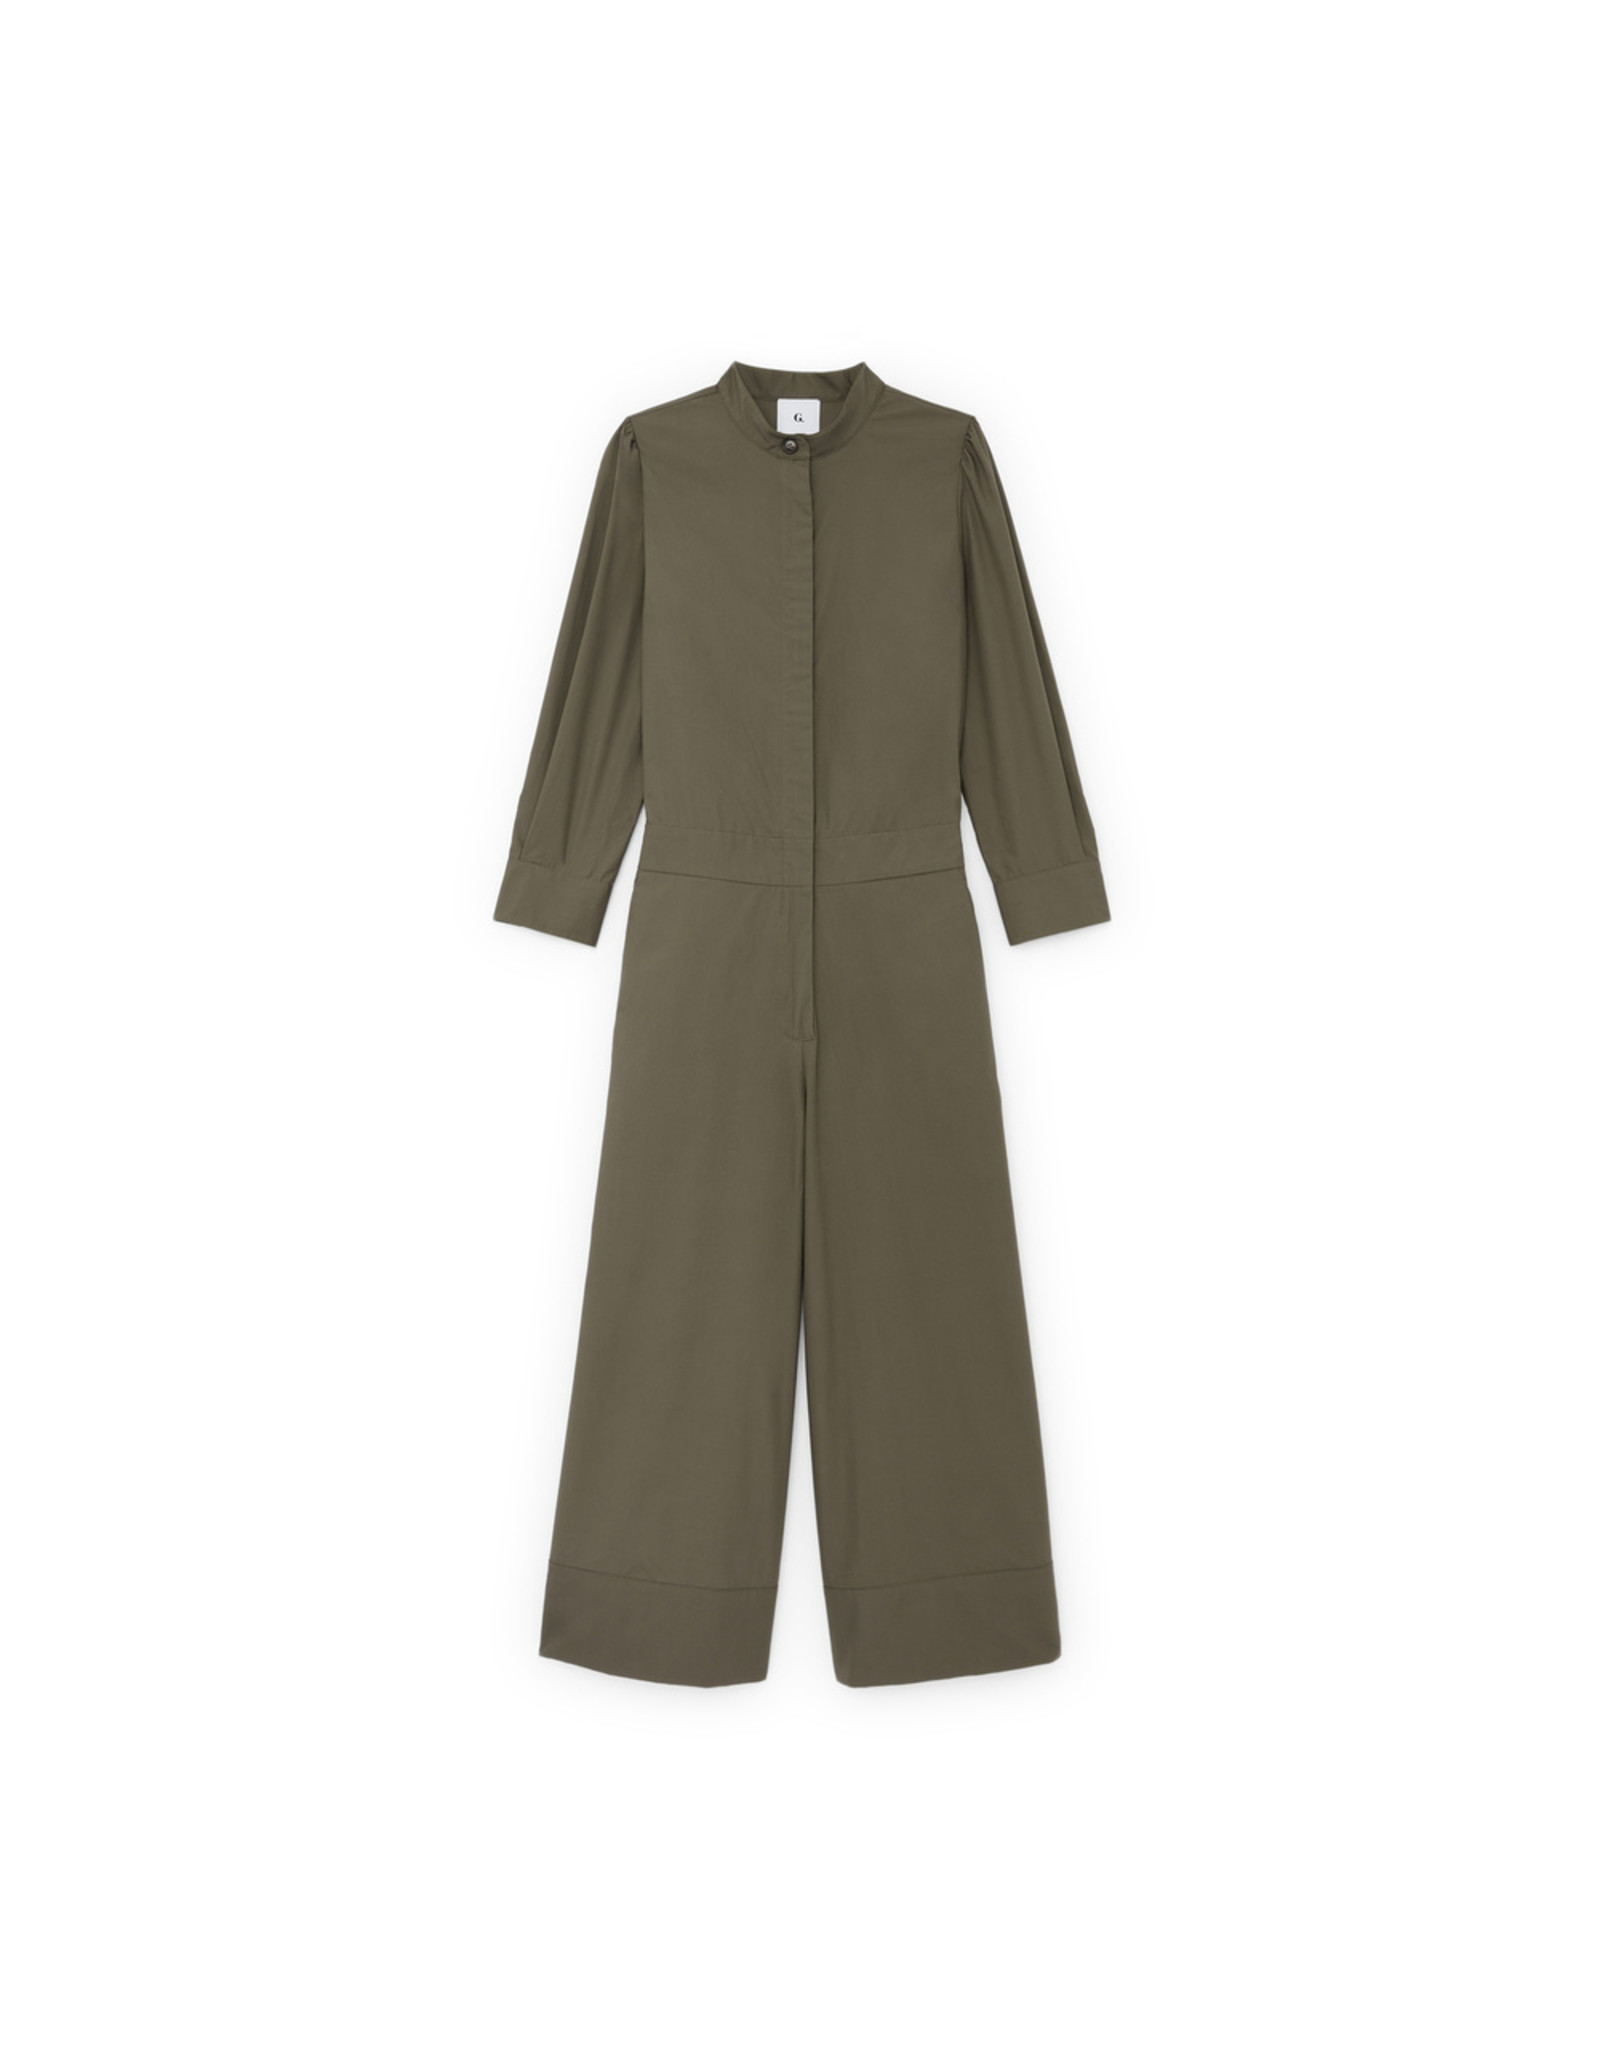 G. Label G. Label Blair Jumpsuit (Color: Army Green, Size: 0)